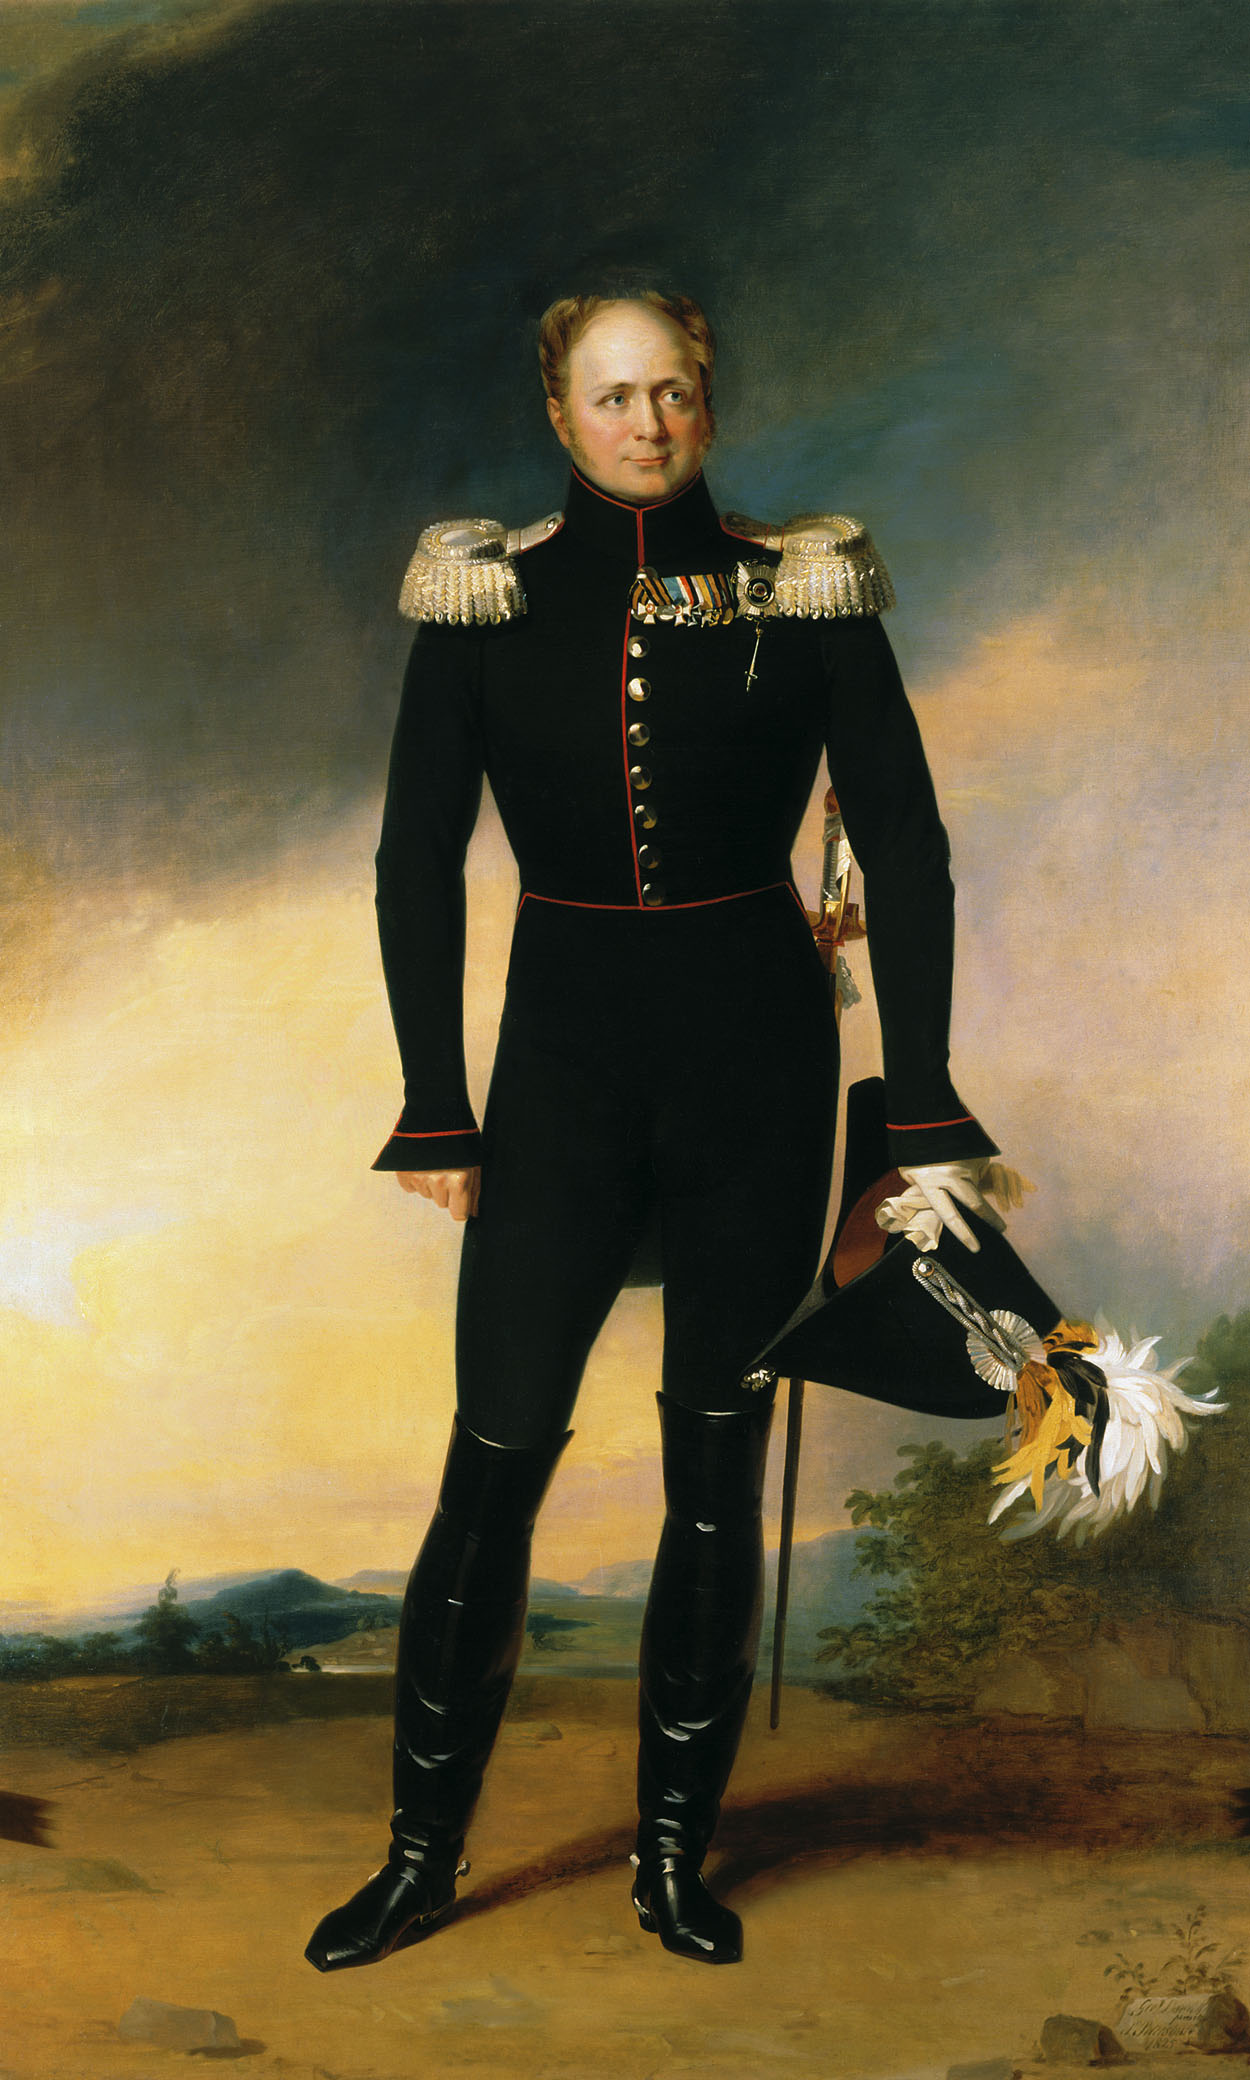 http://upload.wikimedia.org/wikipedia/commons/f/f6/Alexander_I_of_Russia_by_G.Dawe_(1826,_Peterhof).jpg